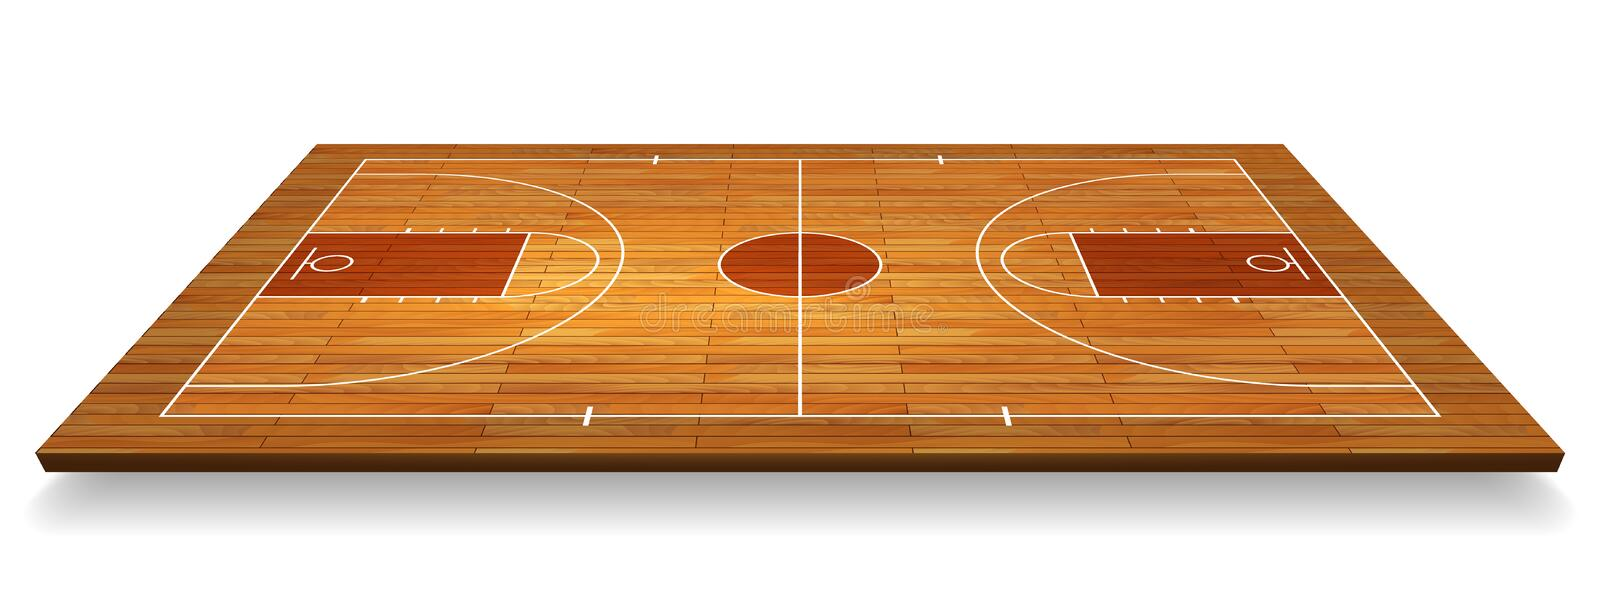 Perspective Basketball court floor with line on wood texture background. Vector illustration royalty free illustration